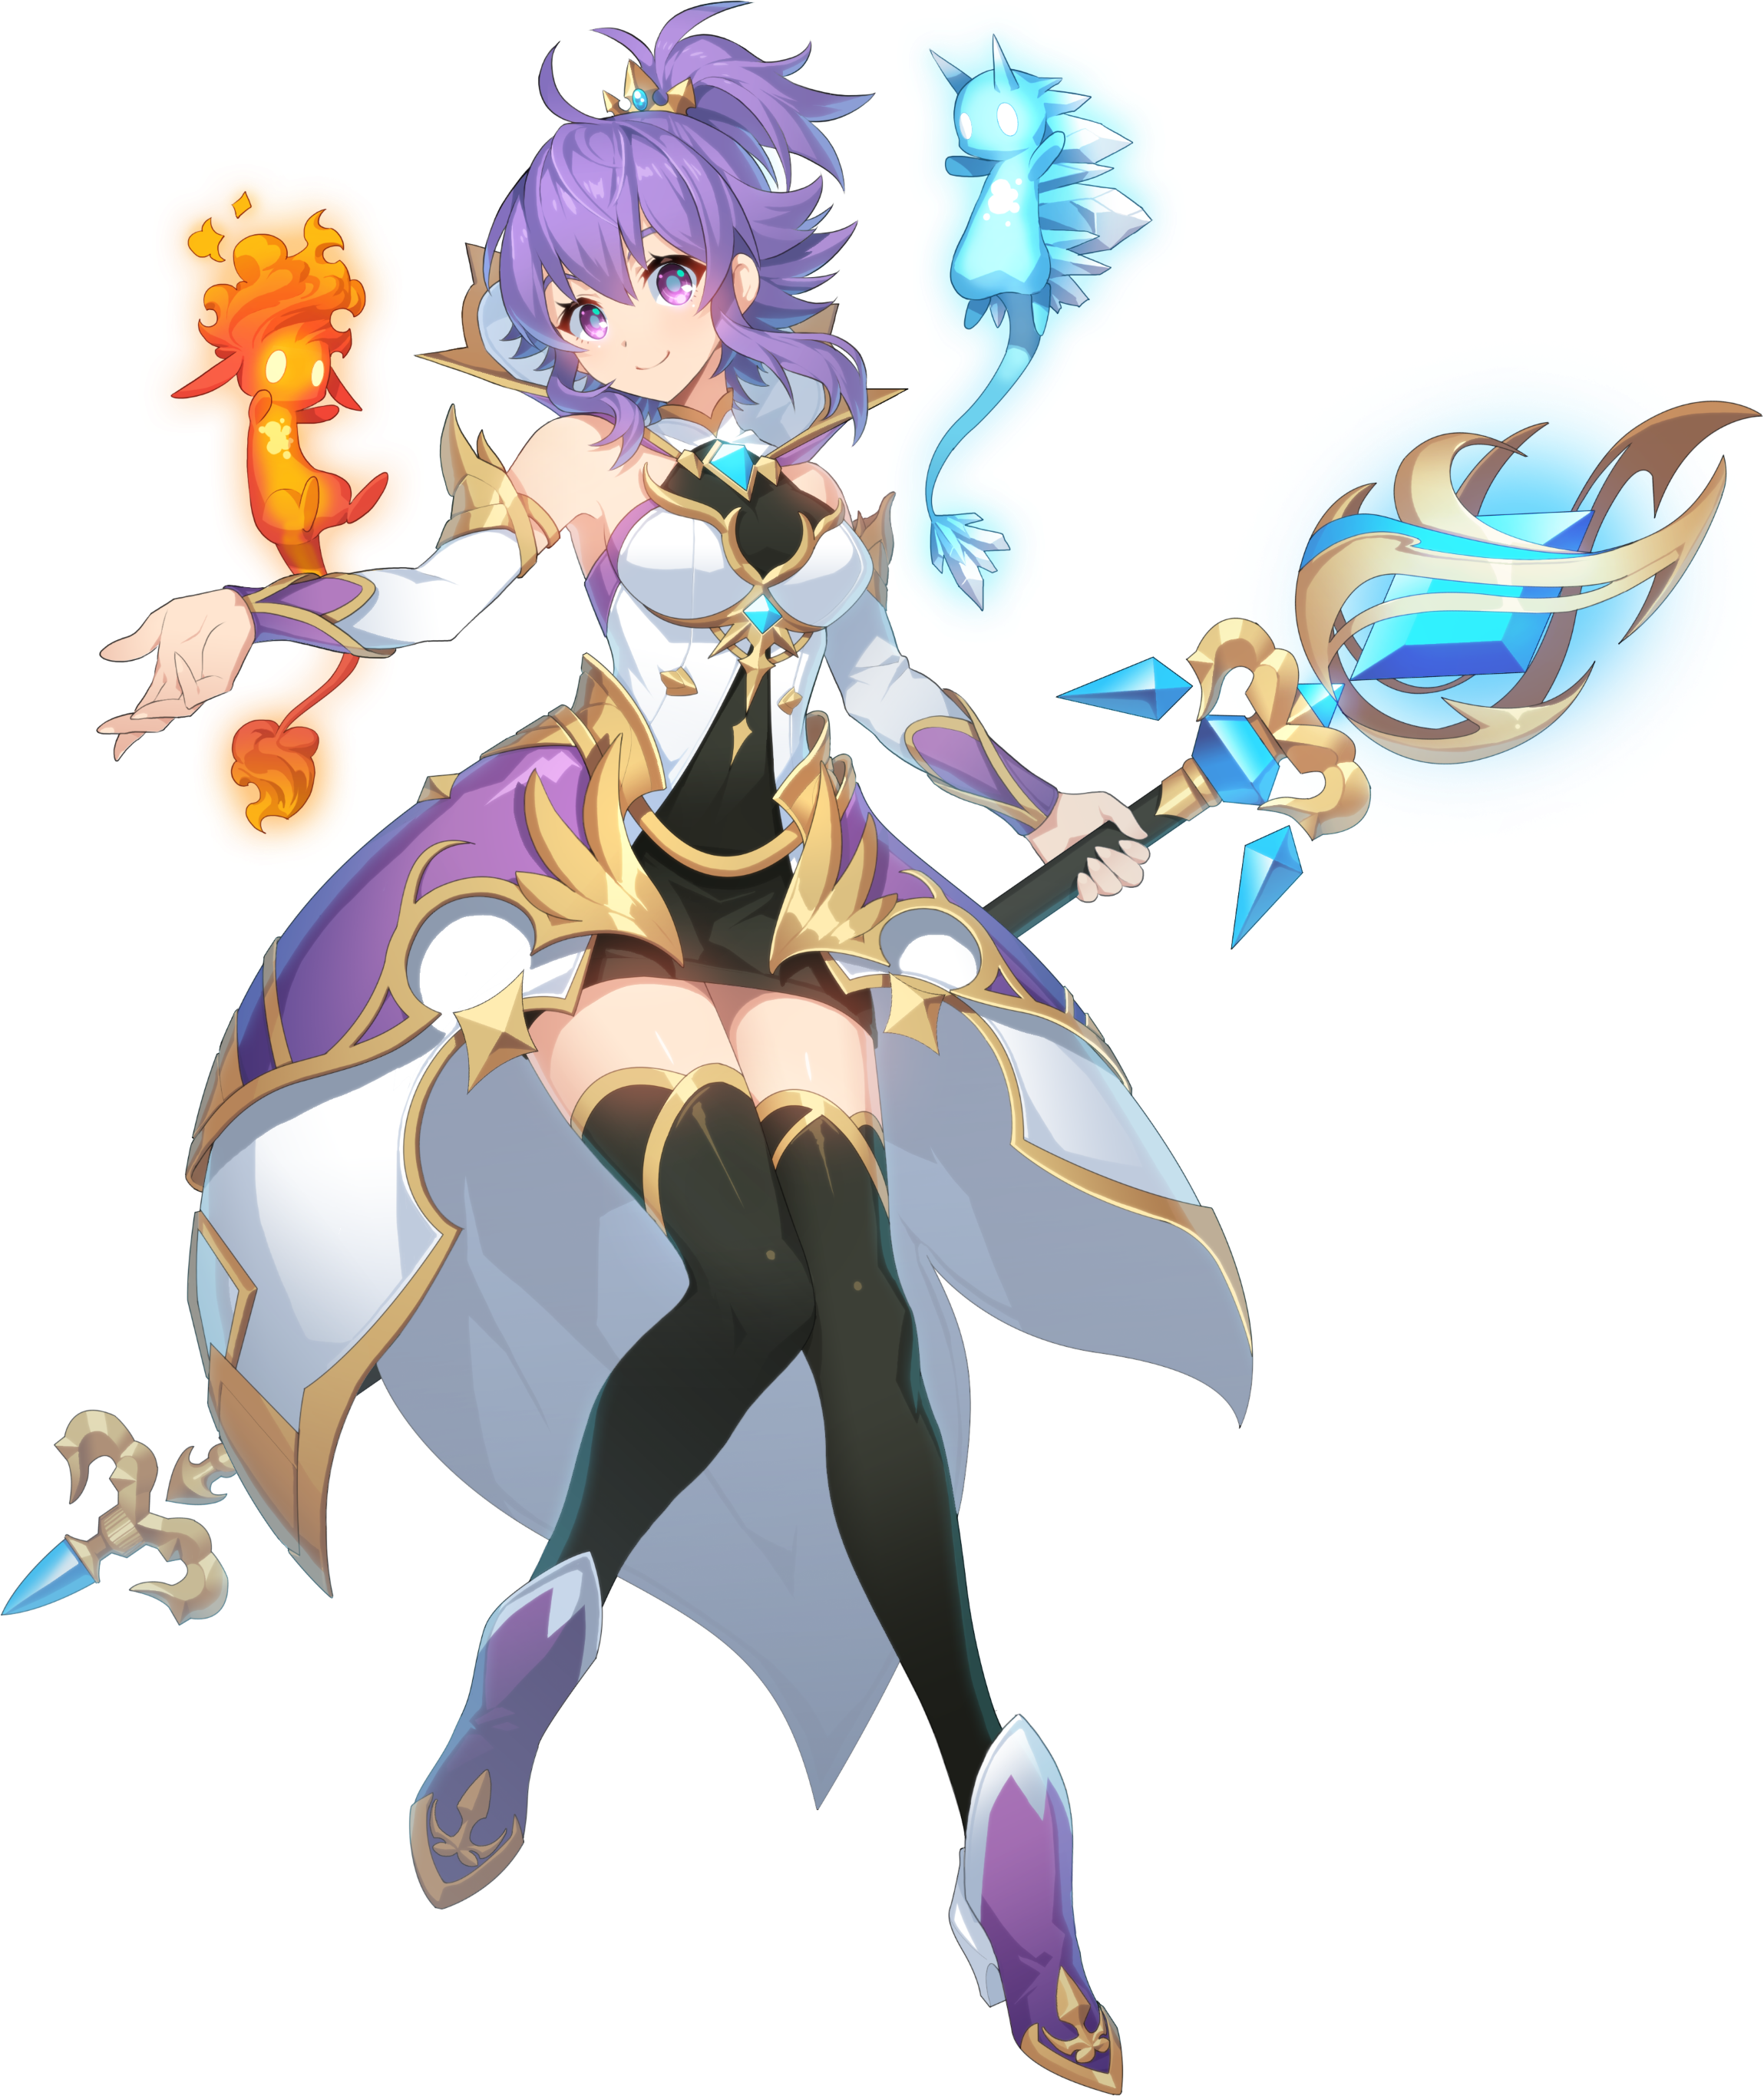 Arme/Grand Chase Dimensional Chaser Grand Chase Wiki